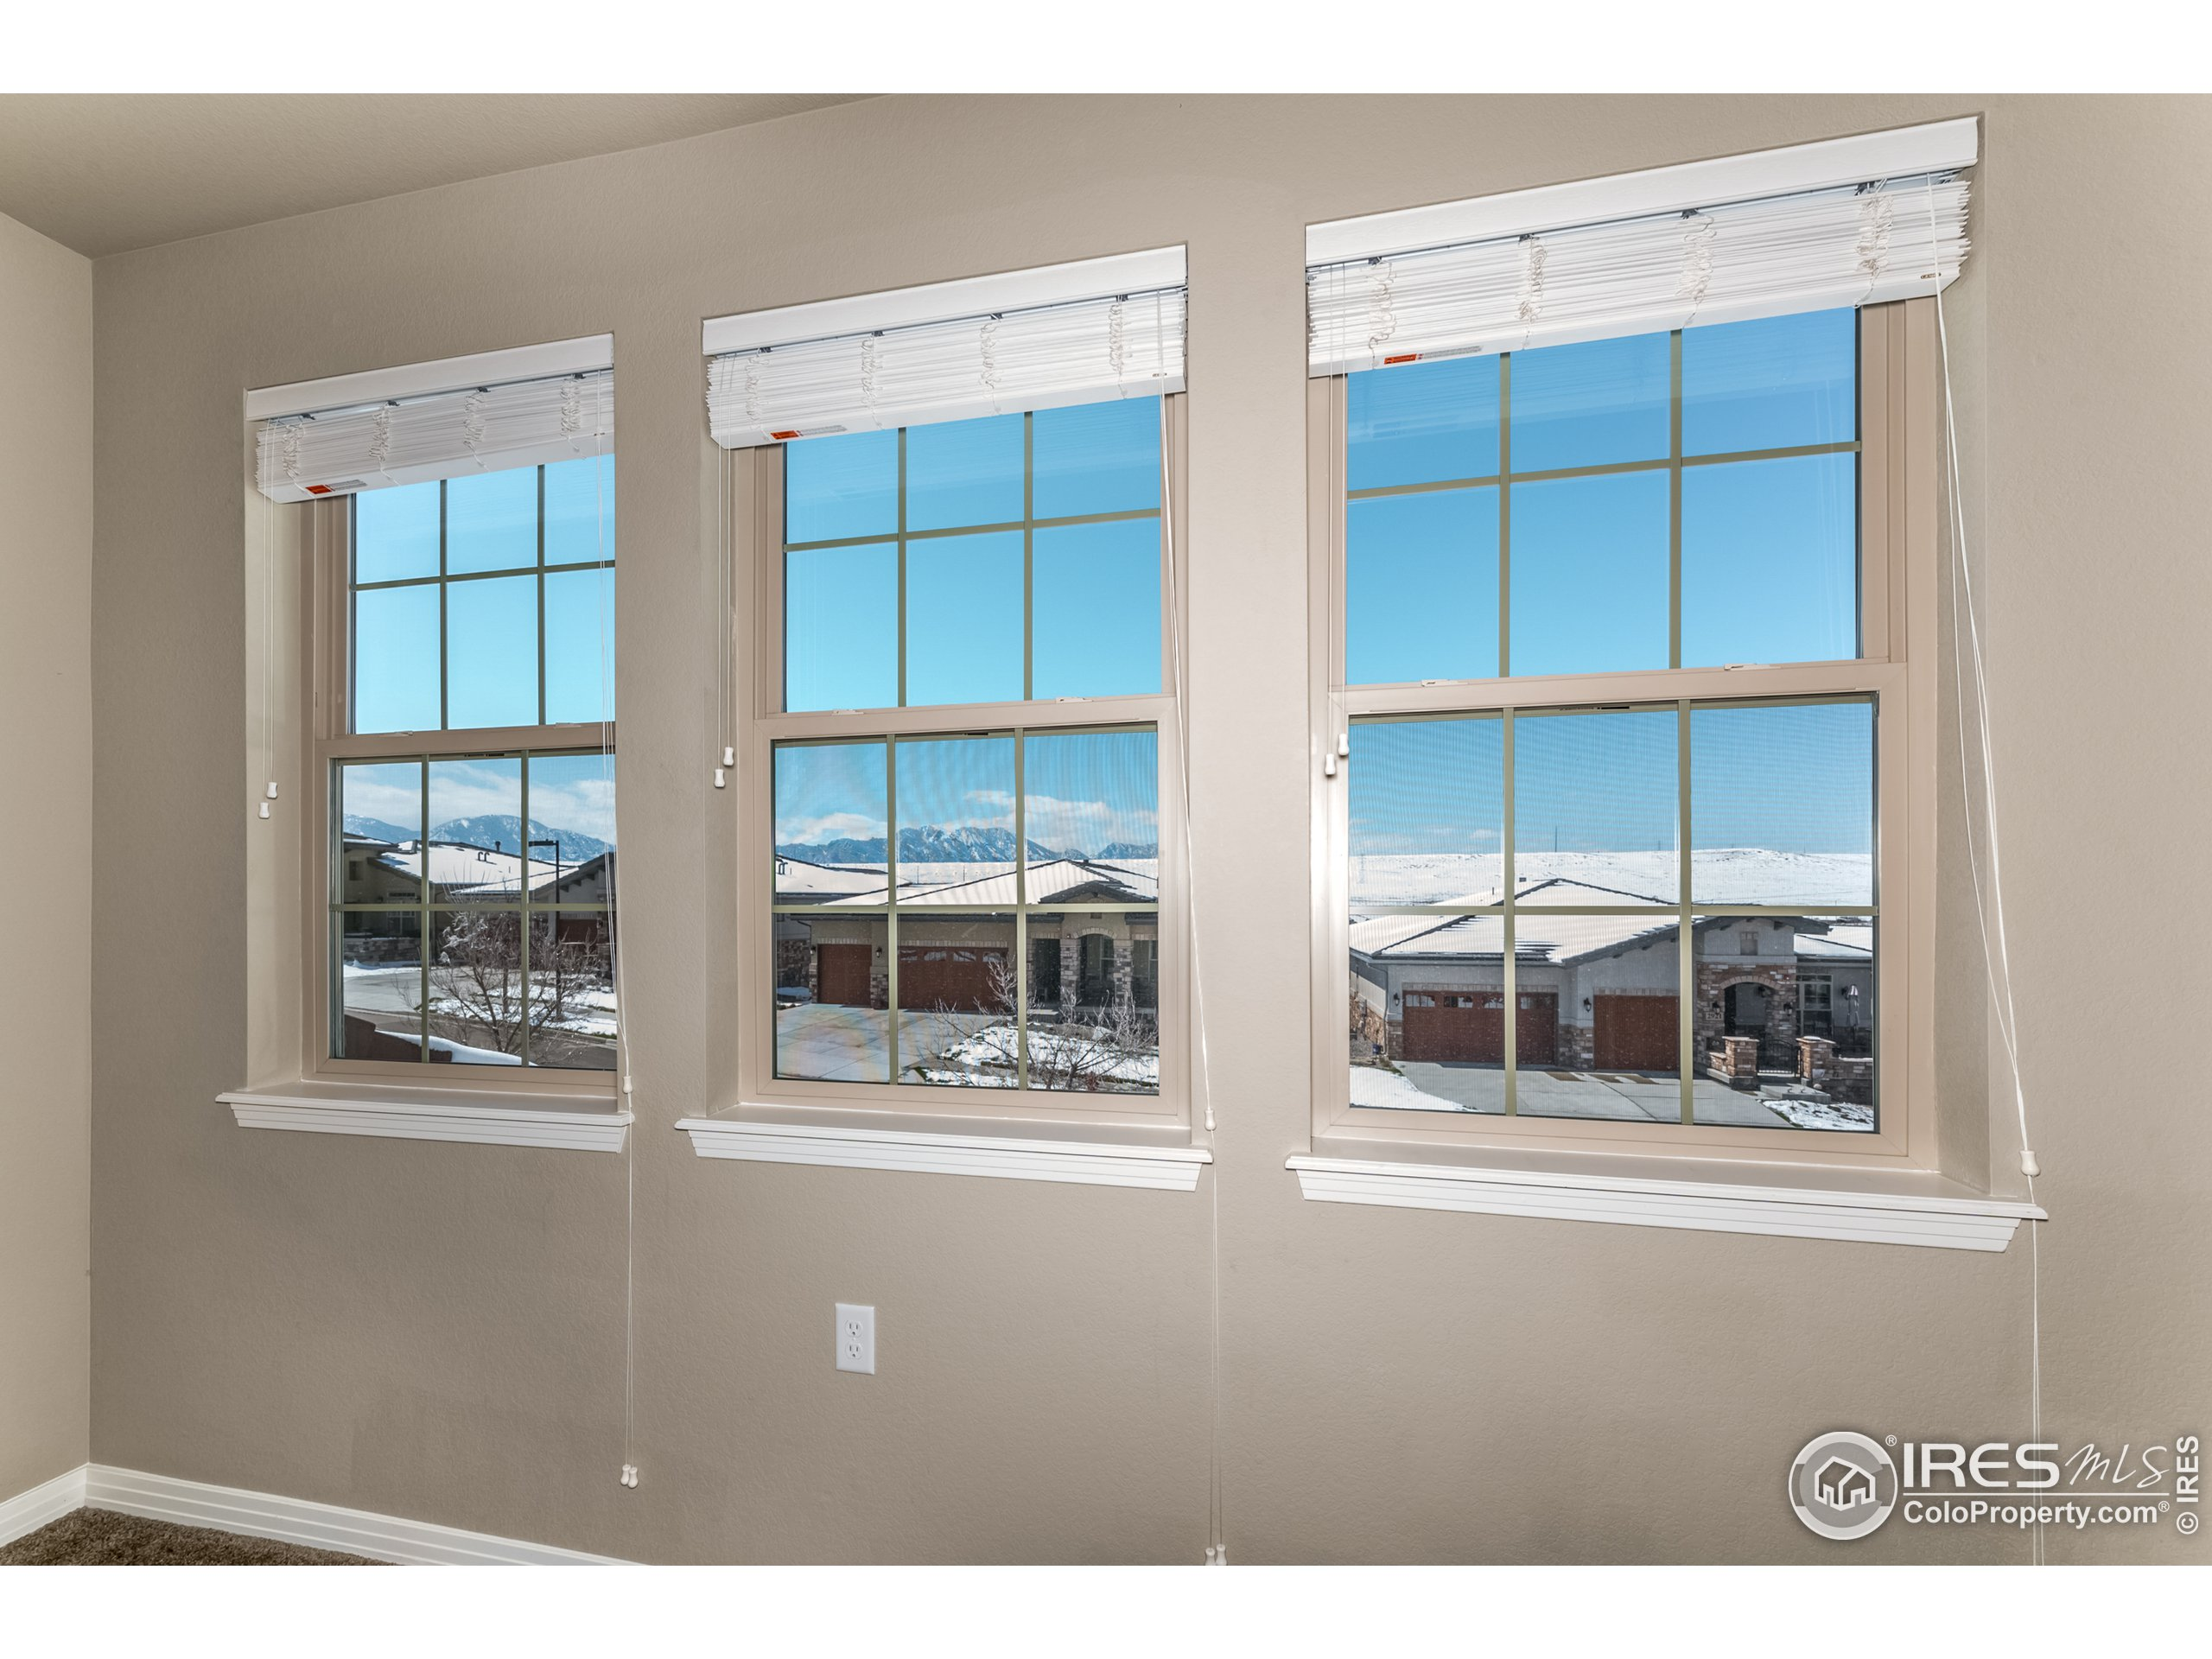 Enjoy the Views from the Master Bedroom